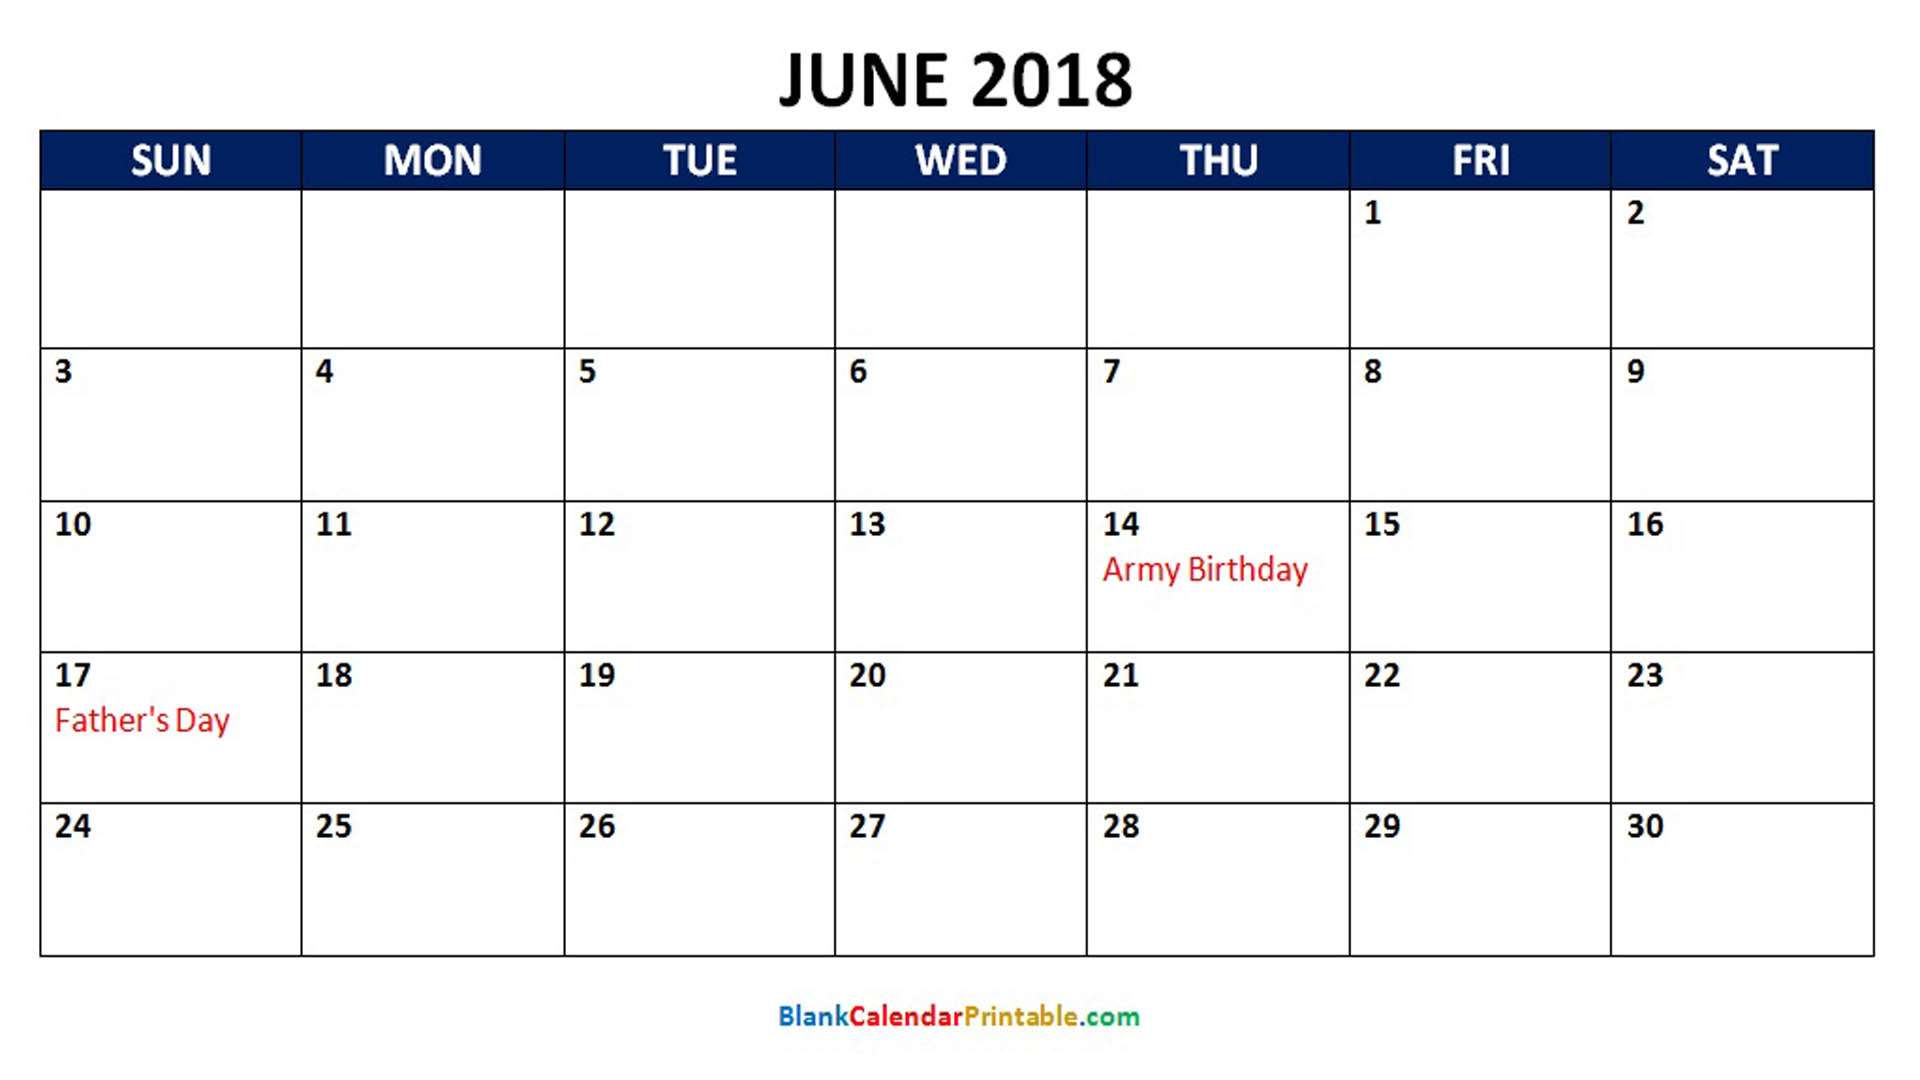 Printable Calendar June 2018 with Holidays